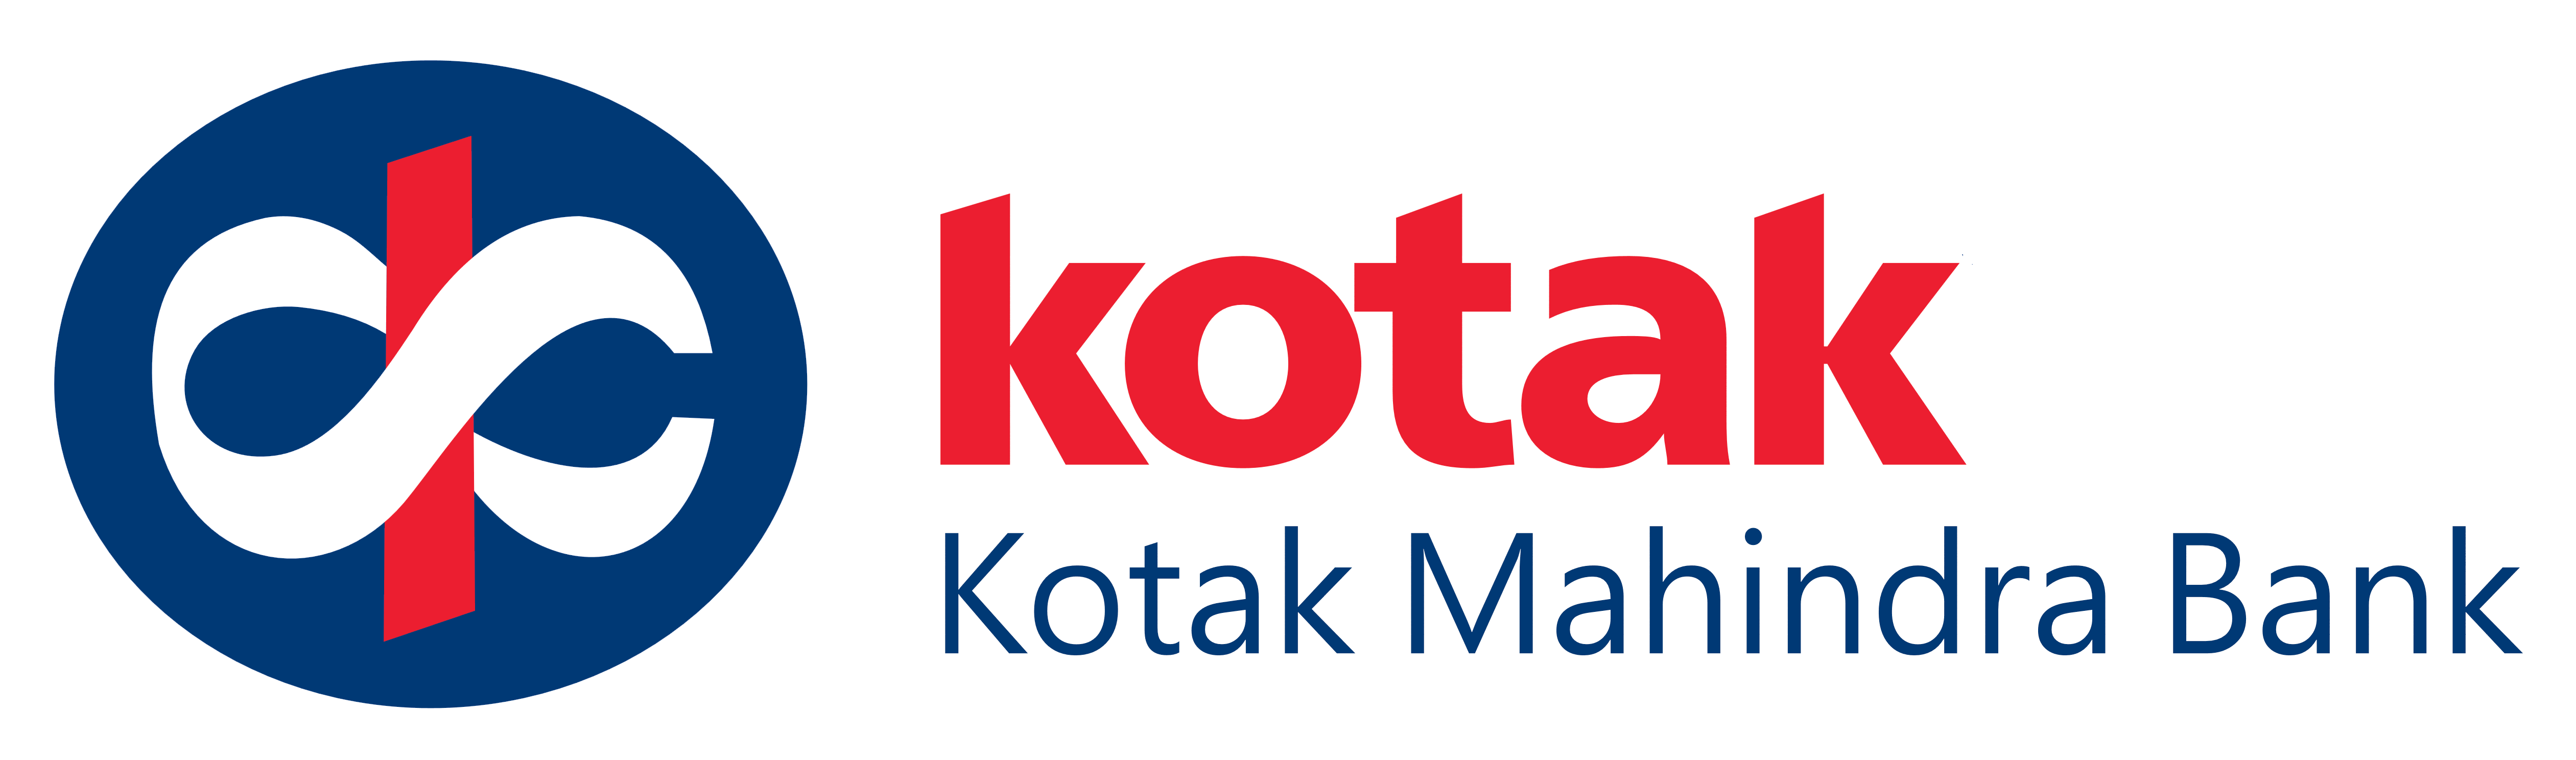 KOTAK MAHINDRA BANK Review, Branches, Internet Banking